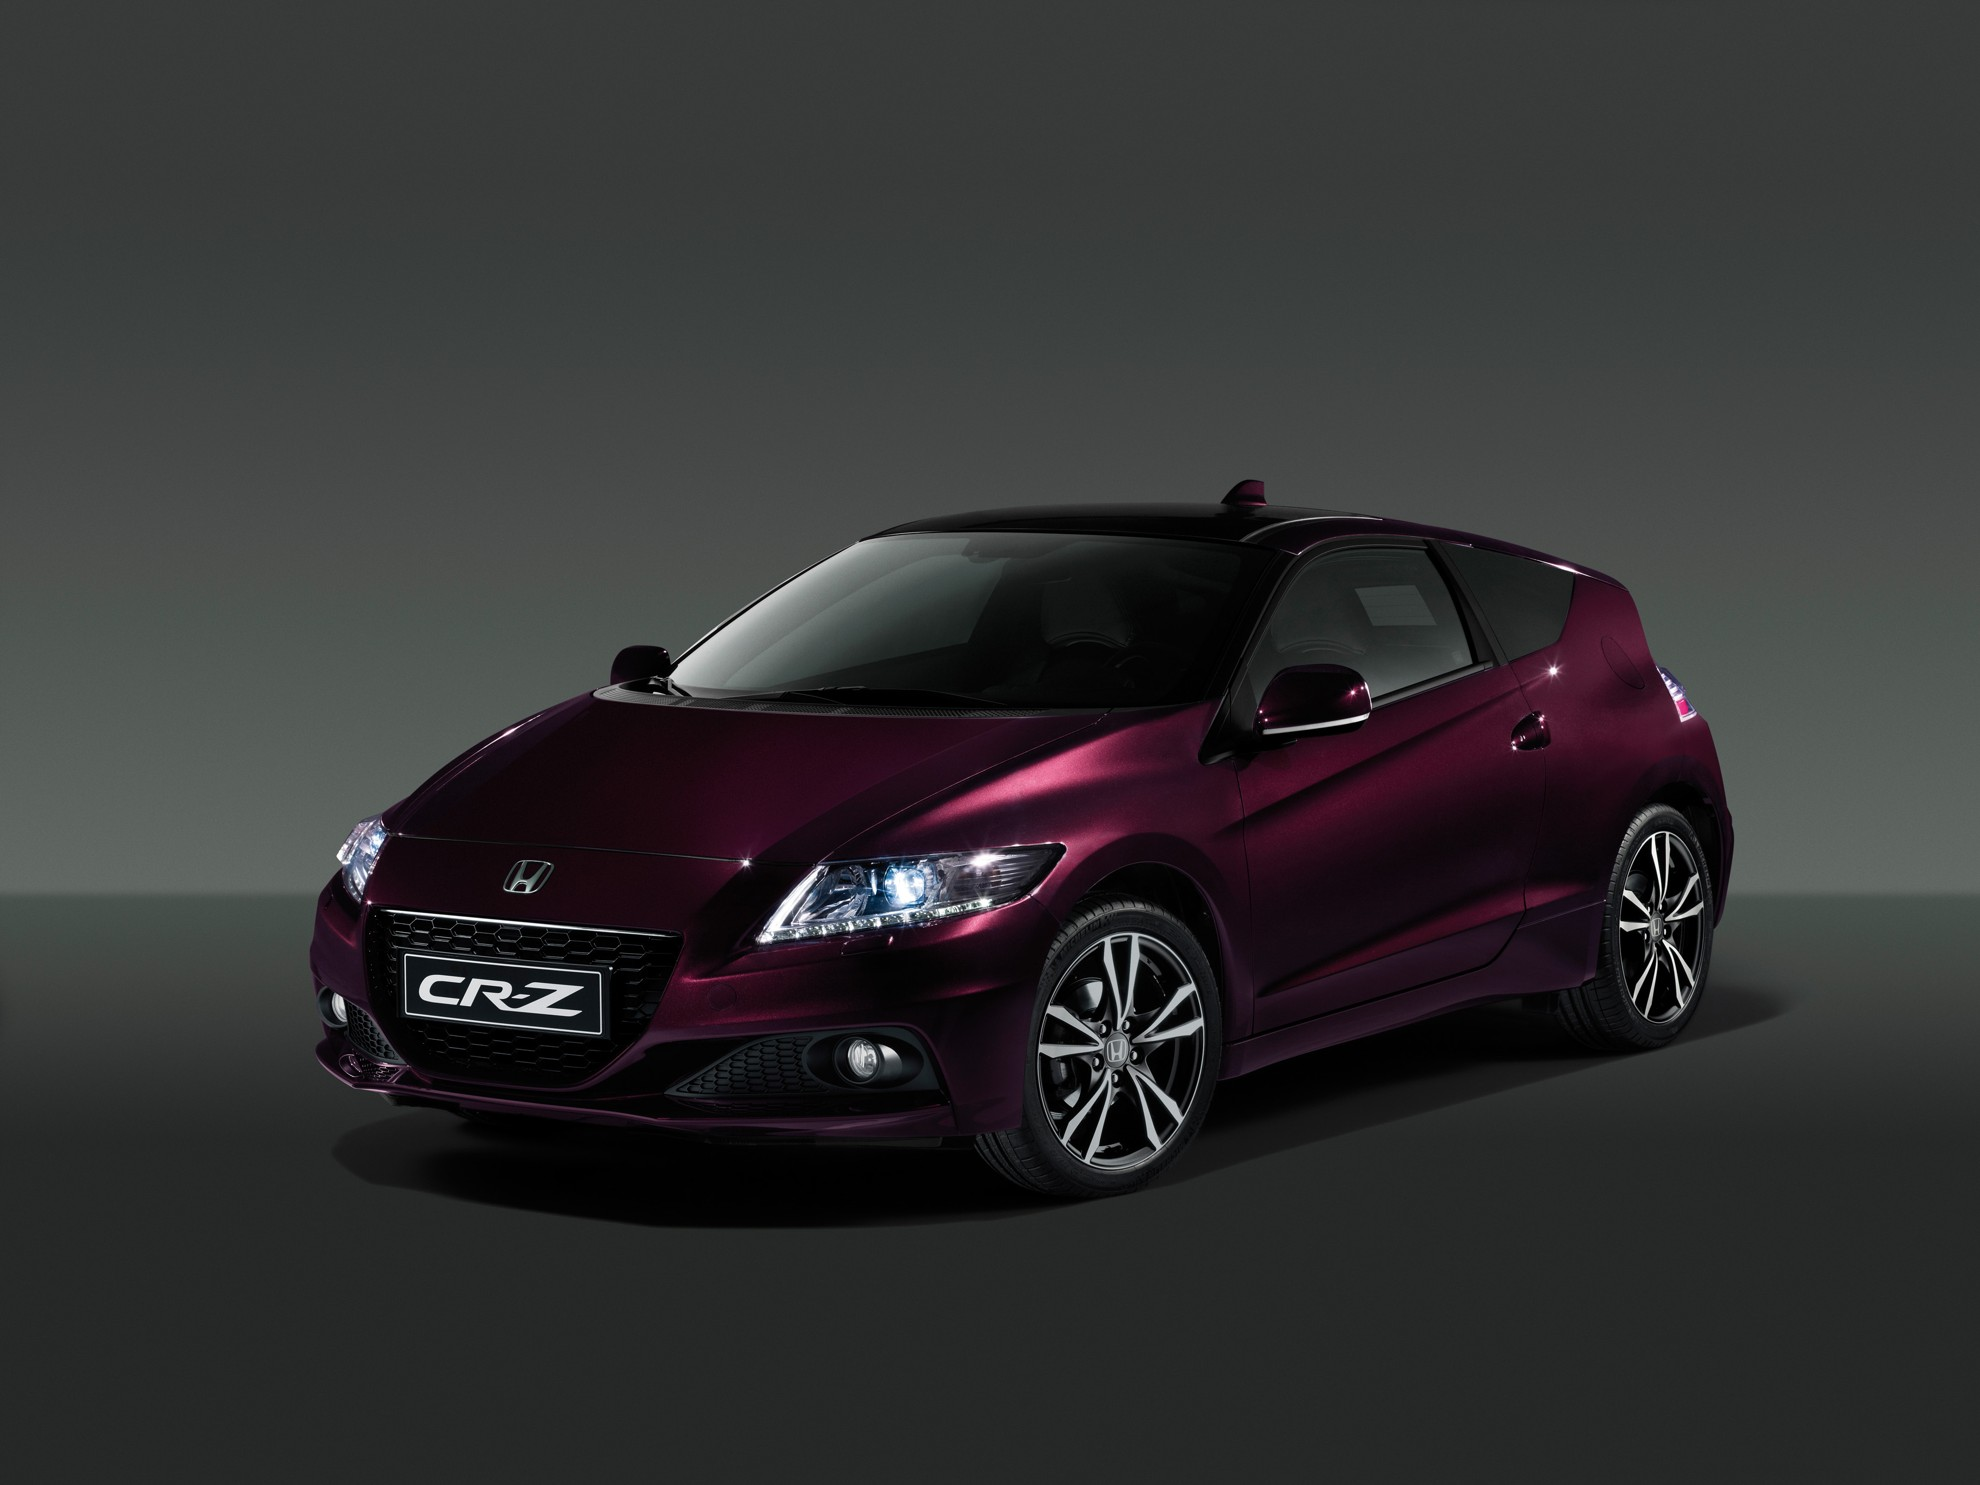 Honda CR-Z Pricing